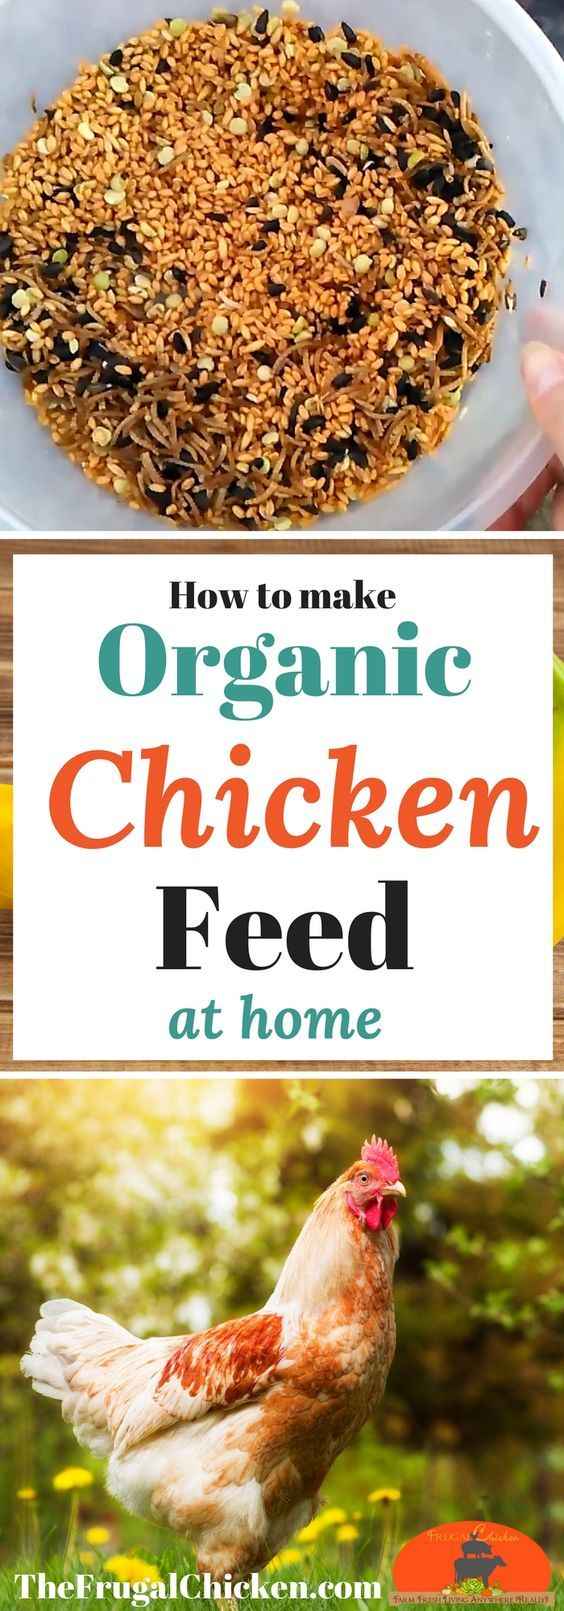 "Want to feed your backyard chickens organic homemade feed? Here's our ""tried-and-true"" recipe thousands of chicken owners depend on!"